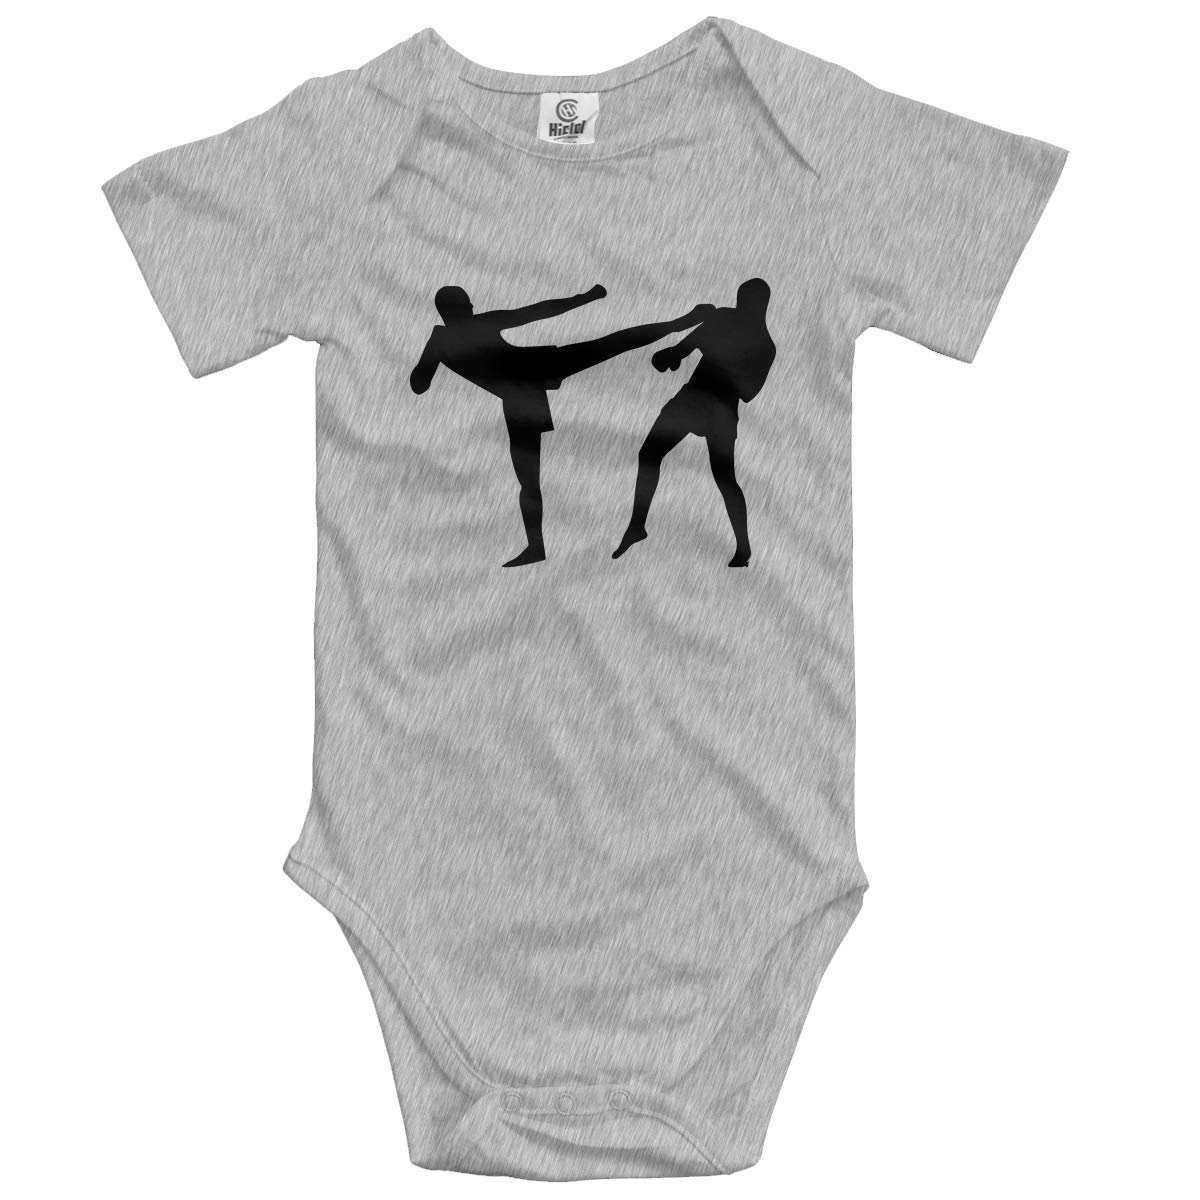 CDHL99 Kick Boxing Baby Boys Or Girls Short Sleeve Layette Bodysuit 0-24 Months